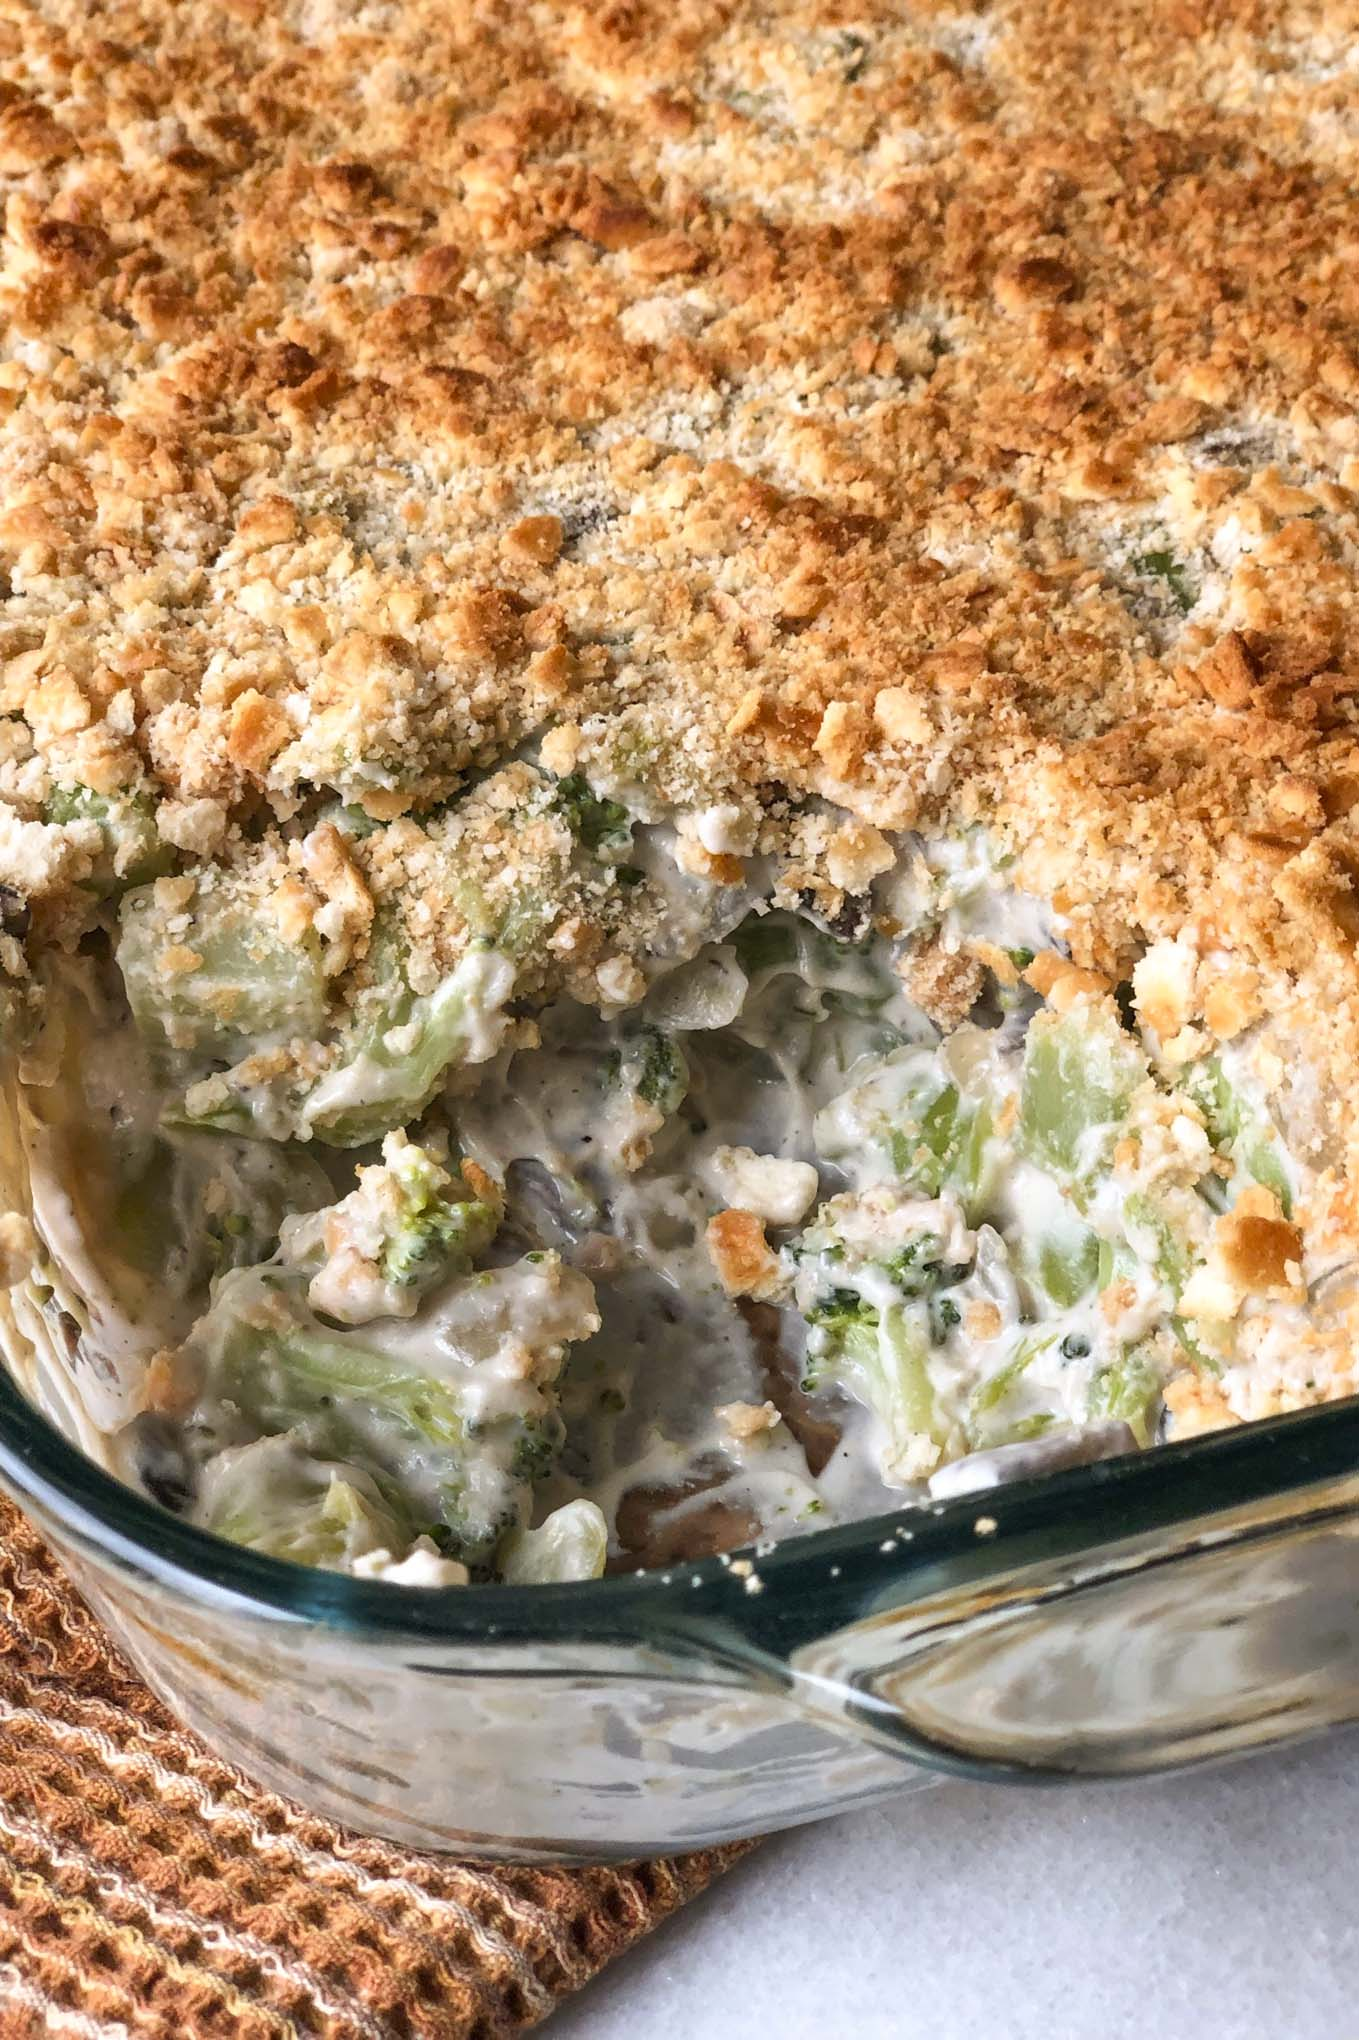 Skip the canned cream of mushroom soup and make this classic broccoli casserole plant-based! Creamy, hearty, comforting, and so flavorful! #vegan #plantbased #recipe #broccoli #casserole #wfpb #oil-free